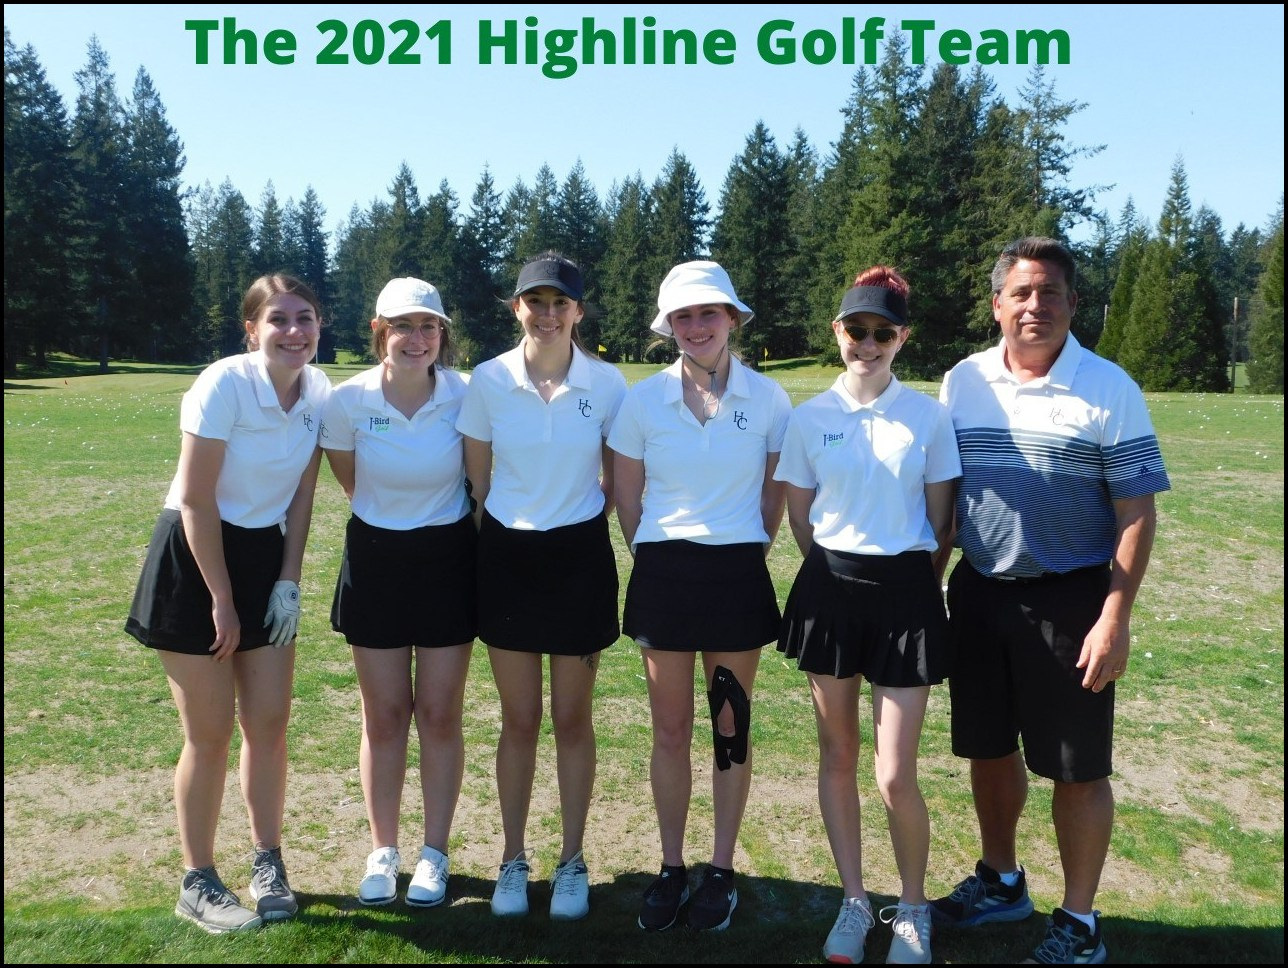 Highline Golf Team Spring 2021